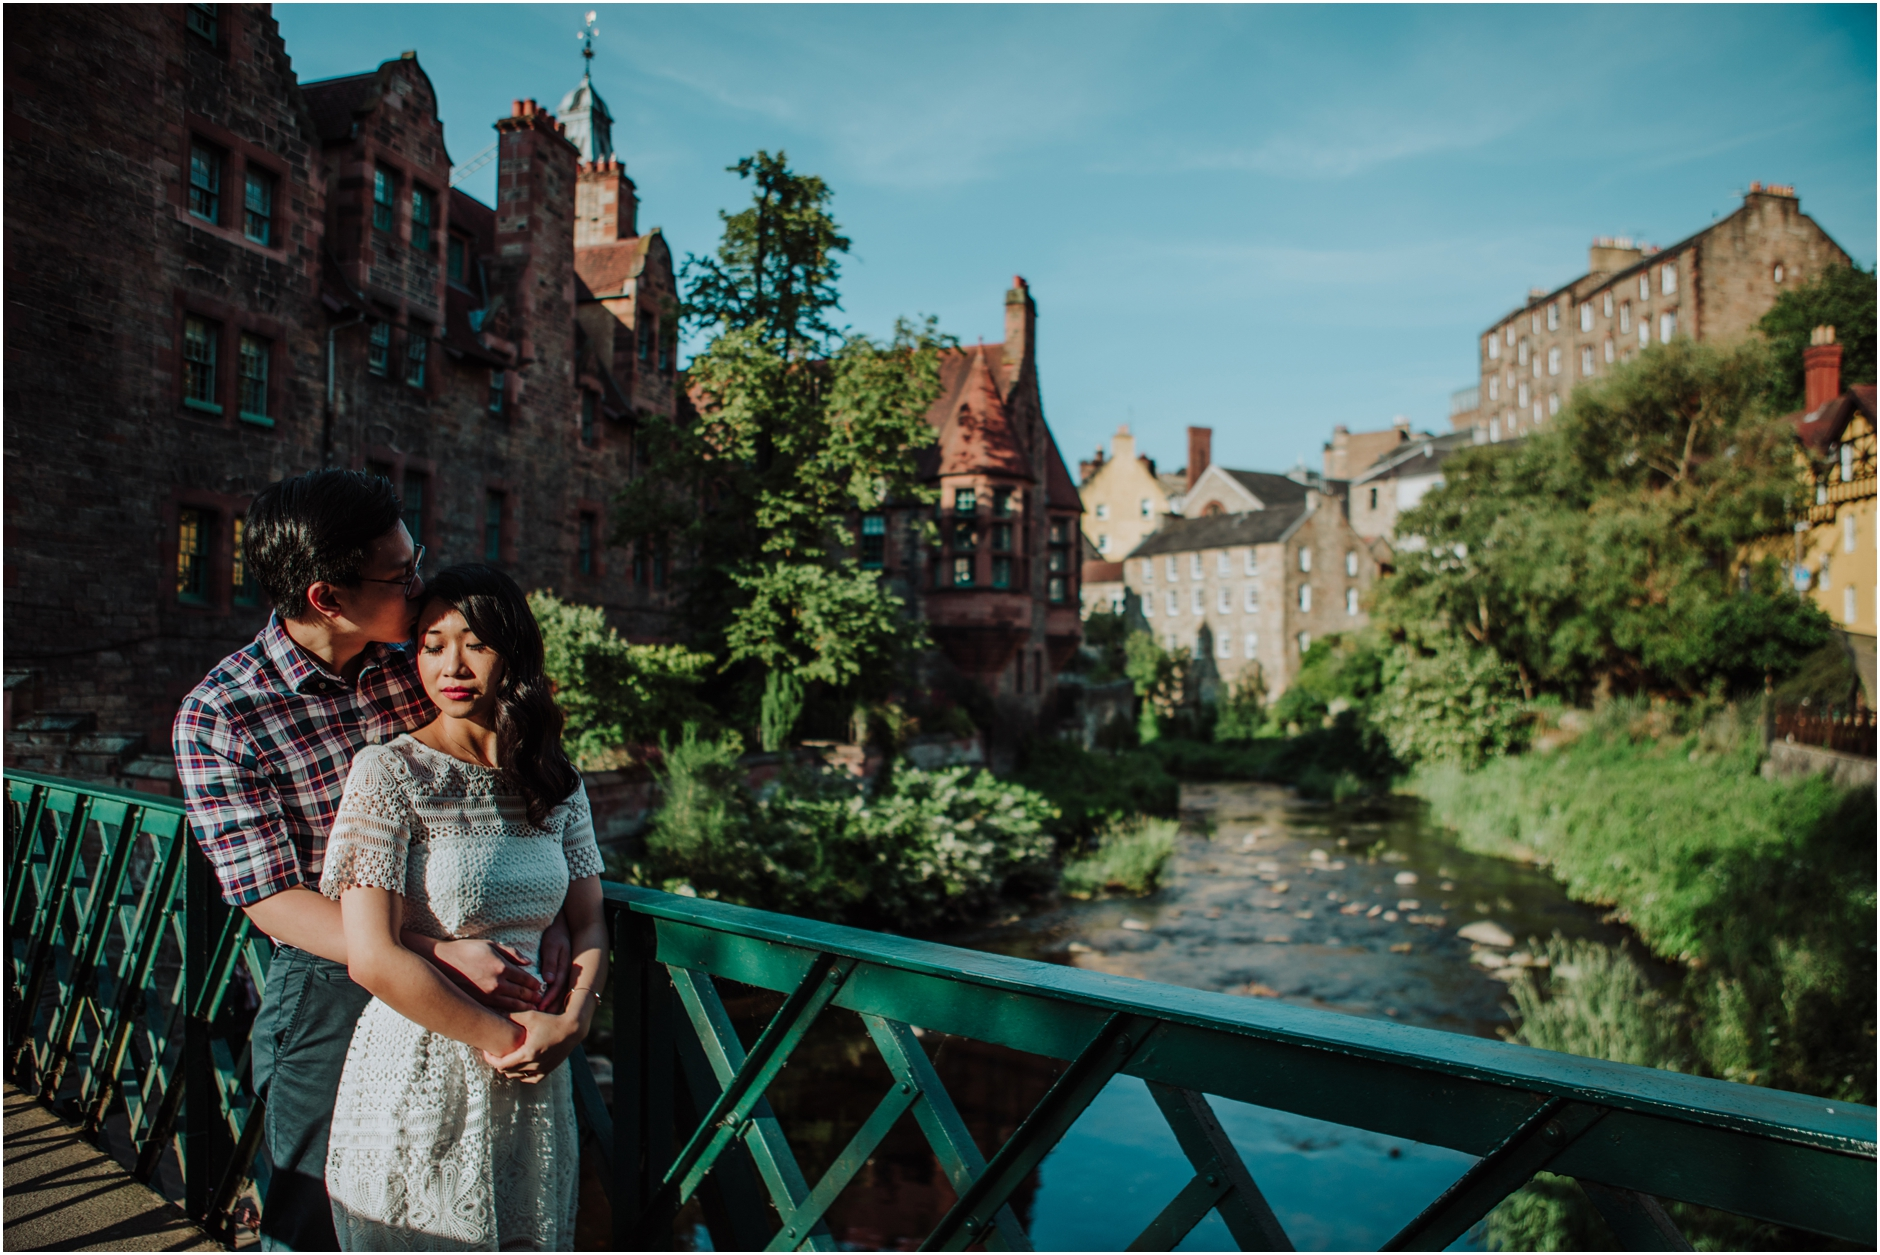 dean village edinburgh pre wedding engagement photoshoot